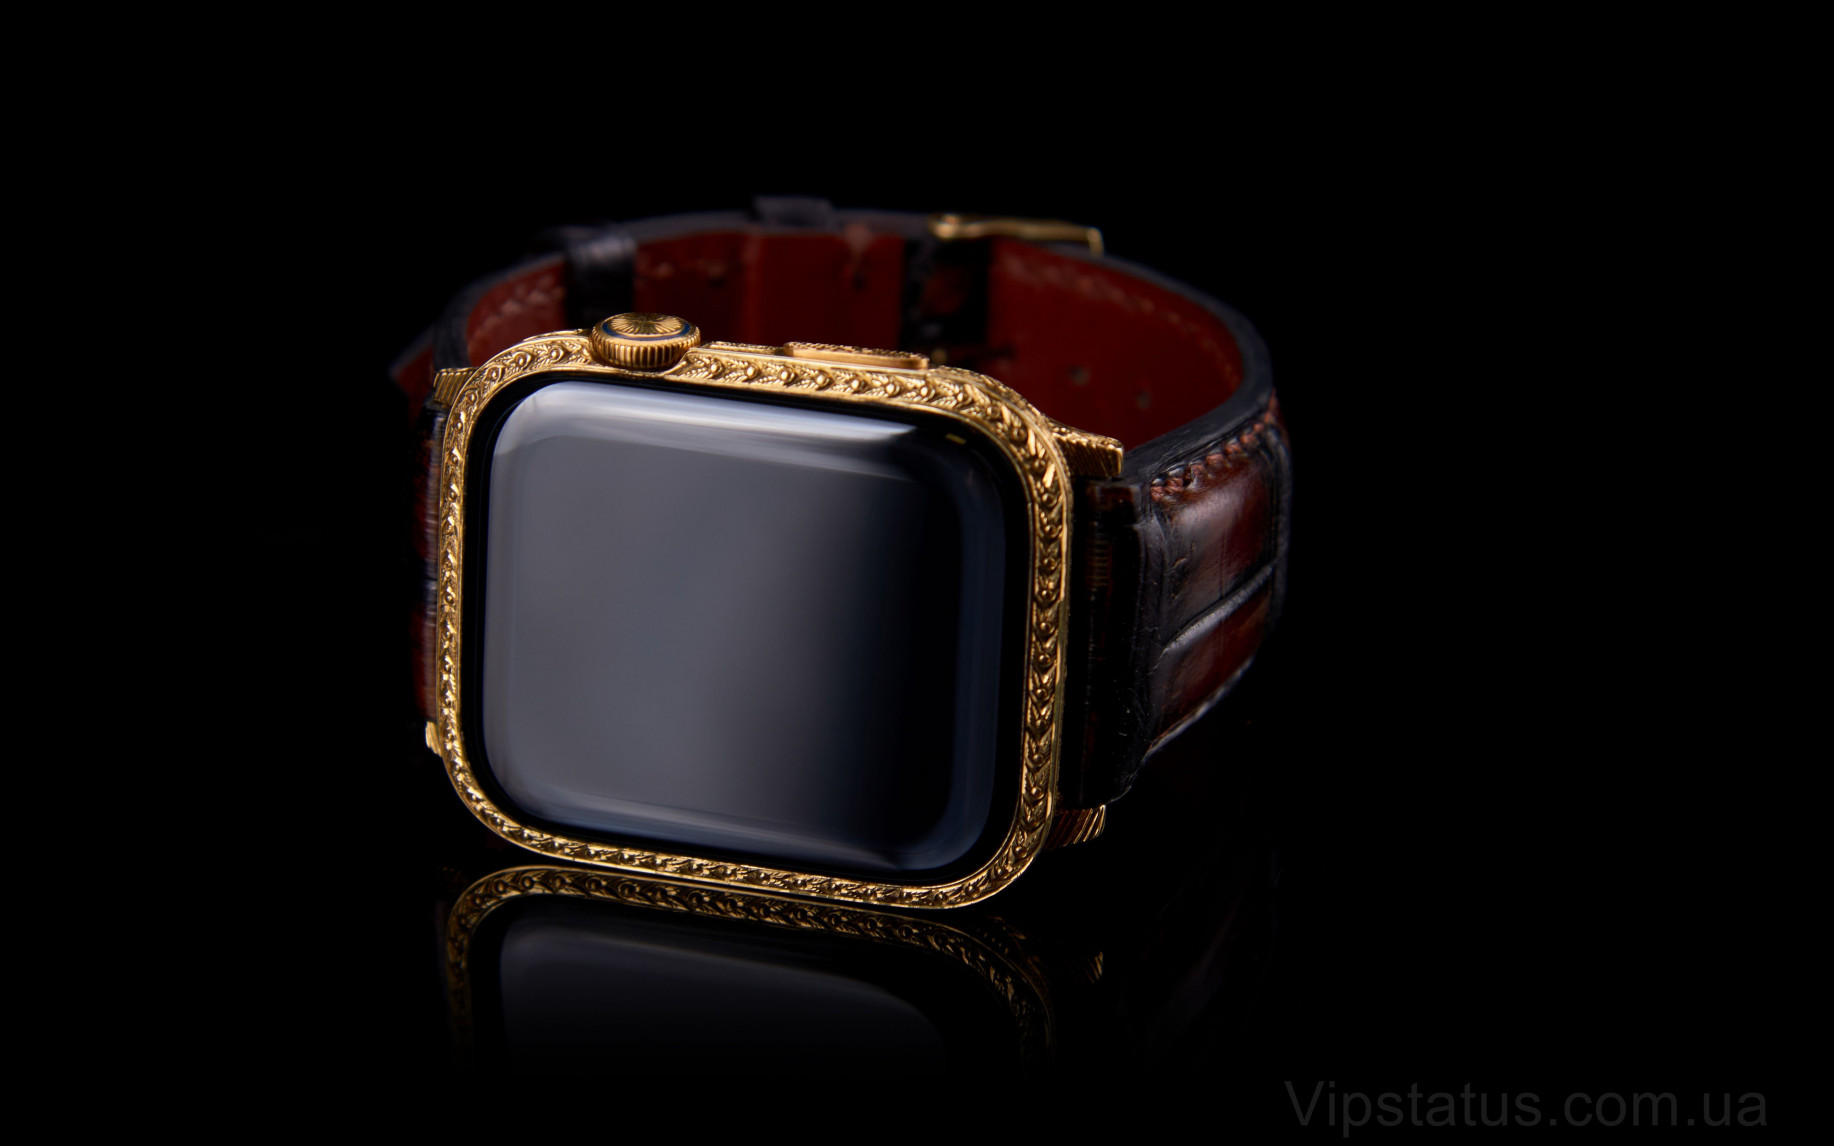 Elite Gold Aristocrate Apple Watch 6 Gold Aristocrate Apple Watch 6 image 2